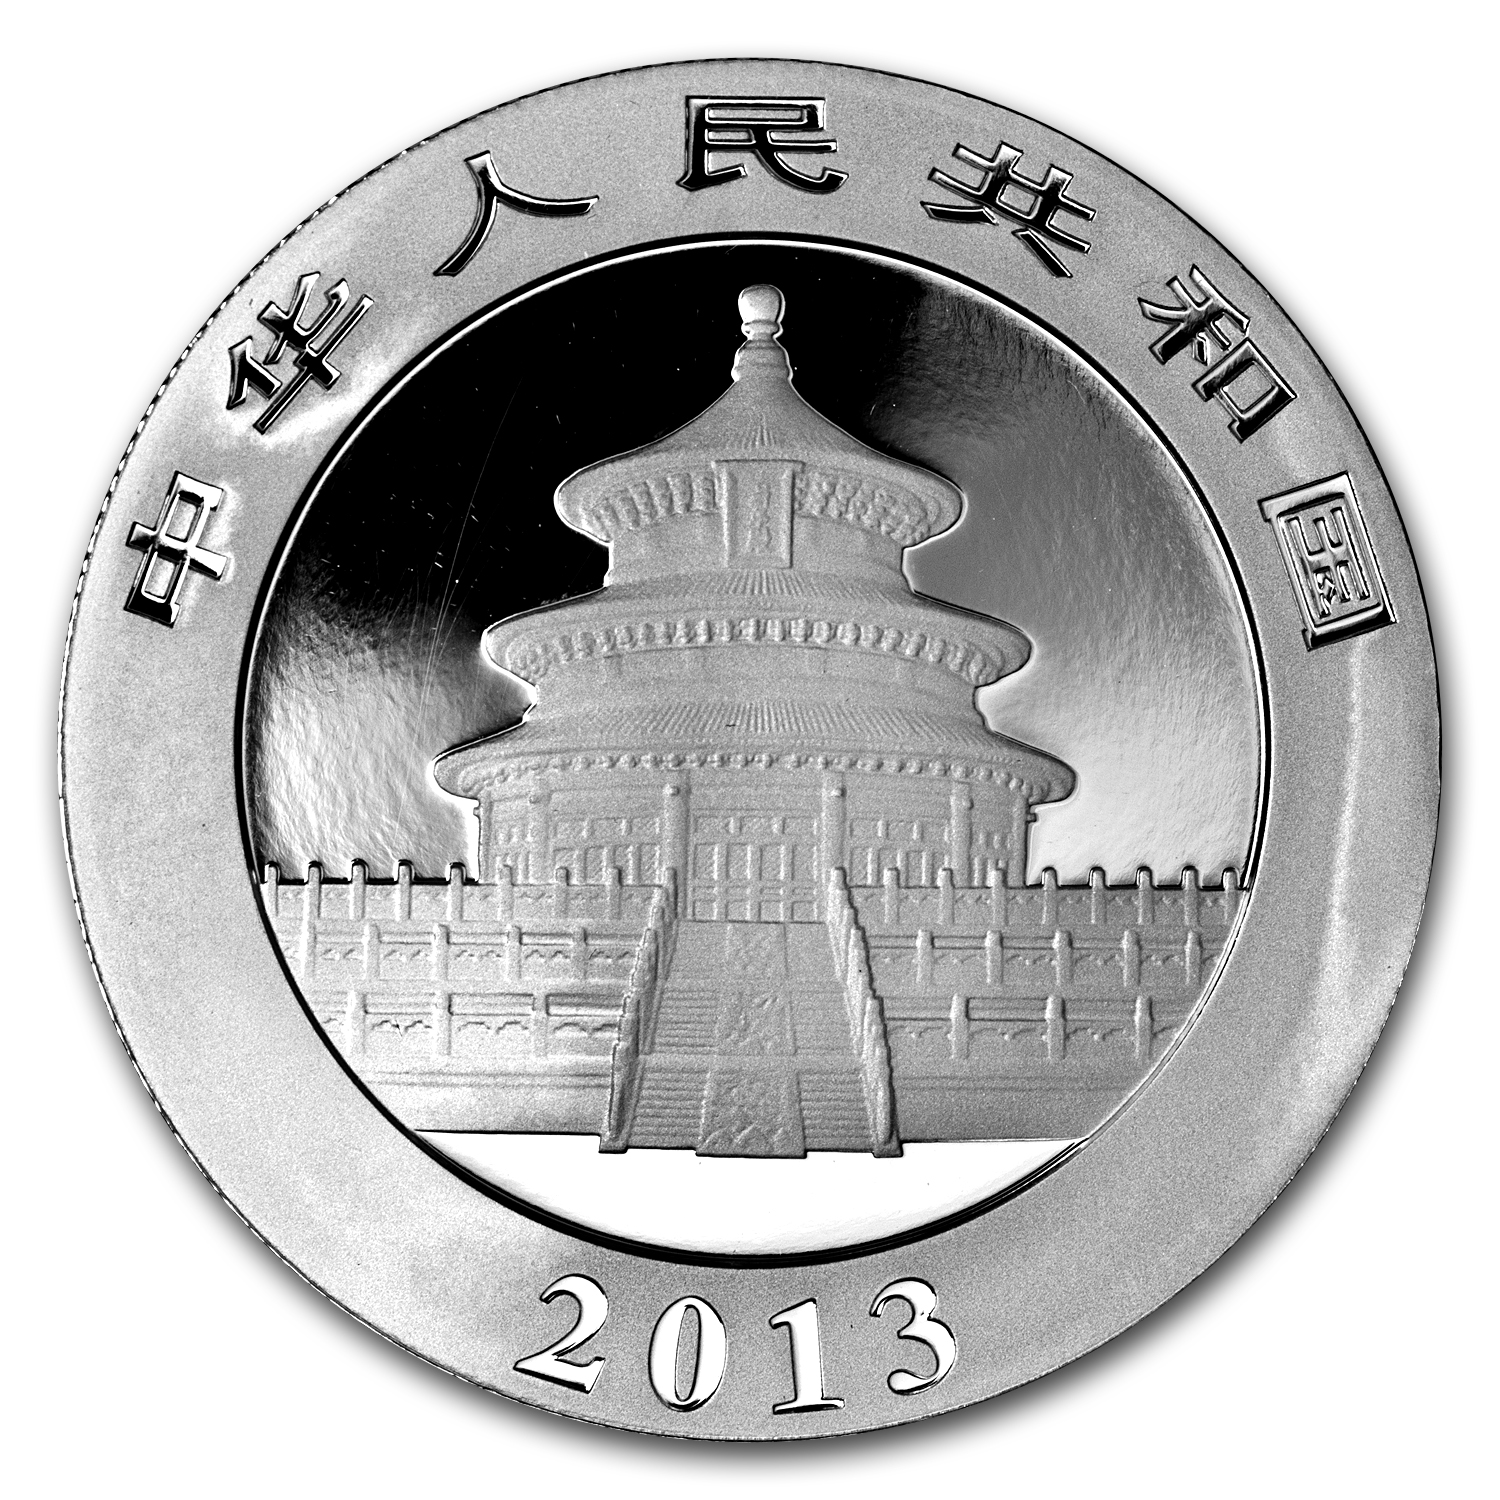 2013 China 1 oz Silver Panda BU (In Capsule)